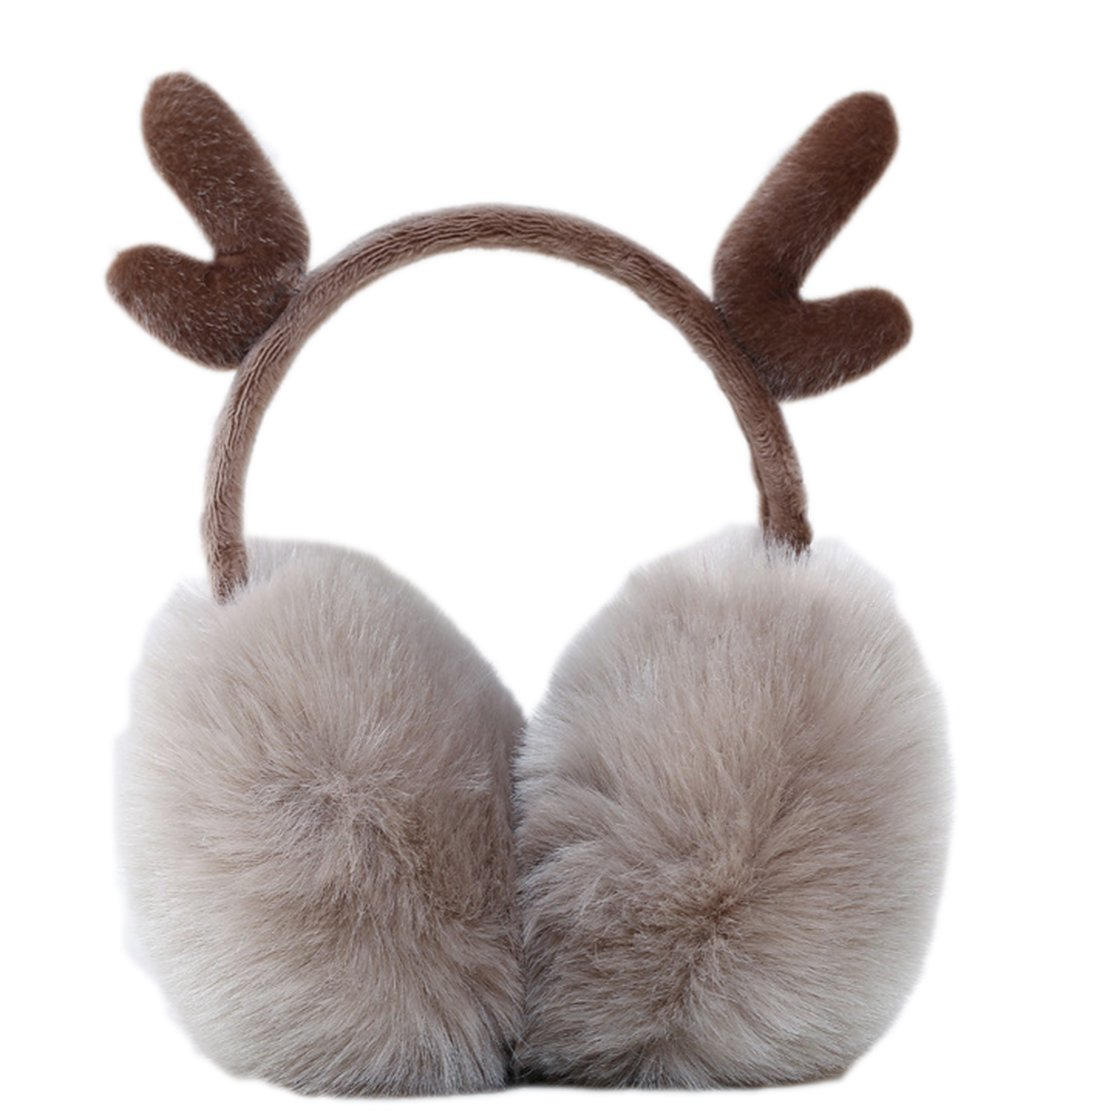 Freedi Women Earmuffs Faux Reindeer Ear Warmers Winter Outdoor for Teens Girls Christmas Warm